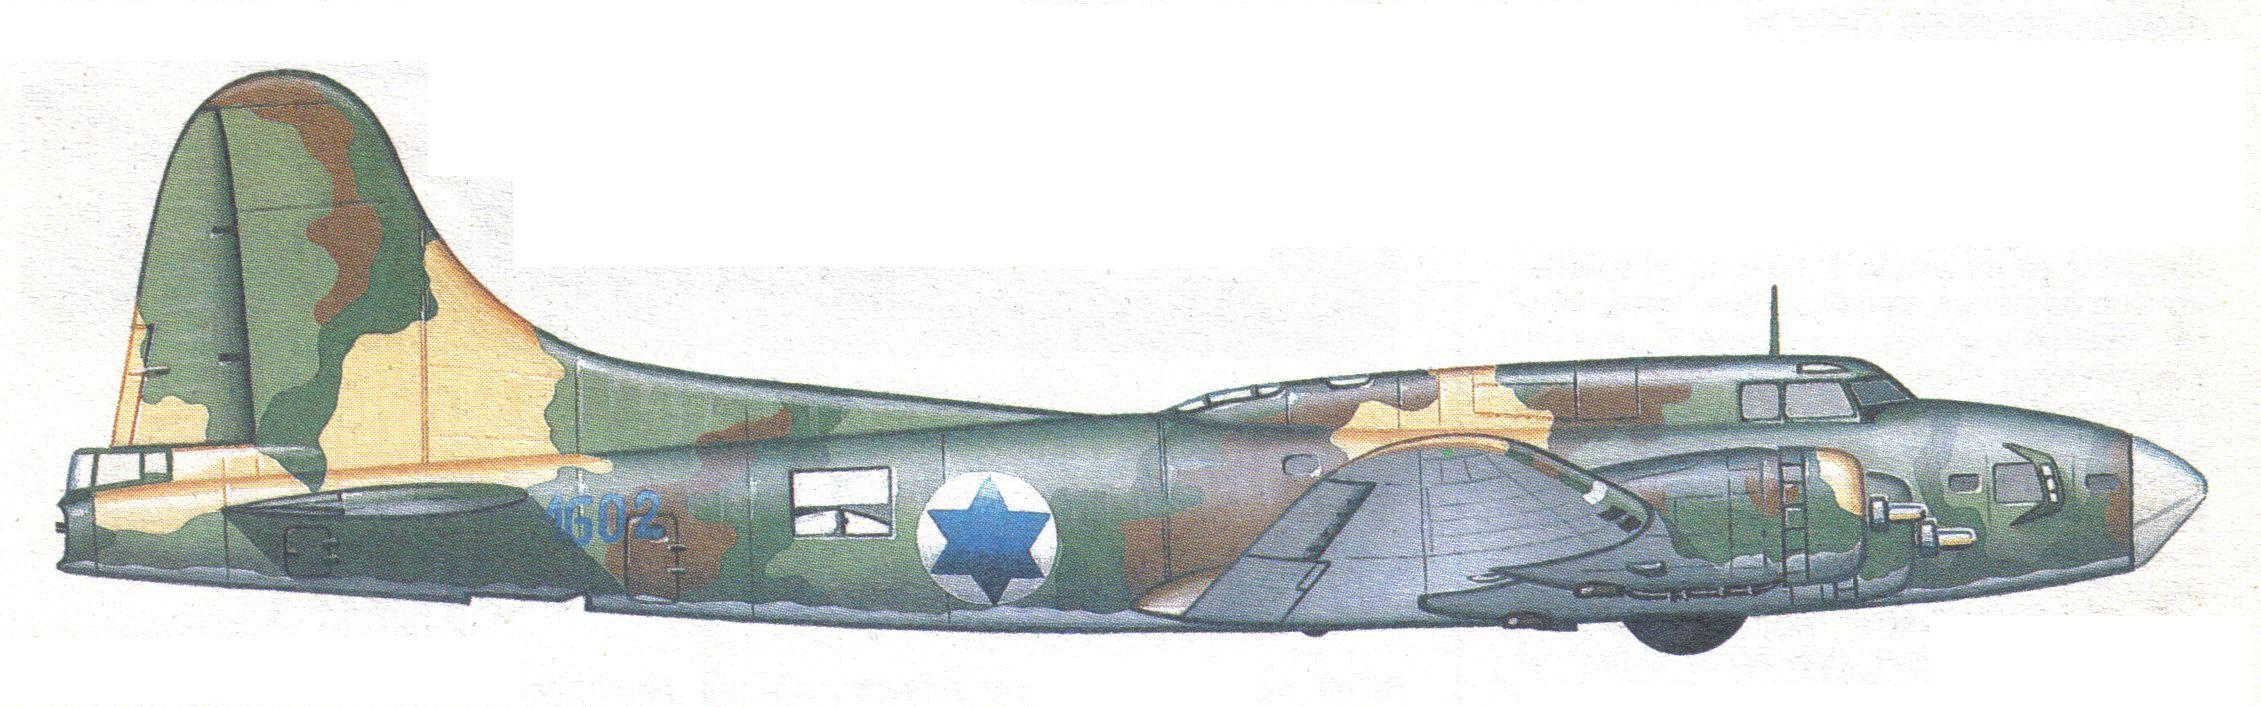 Boeing B-17G Flying Fortress_izrael02.jpg